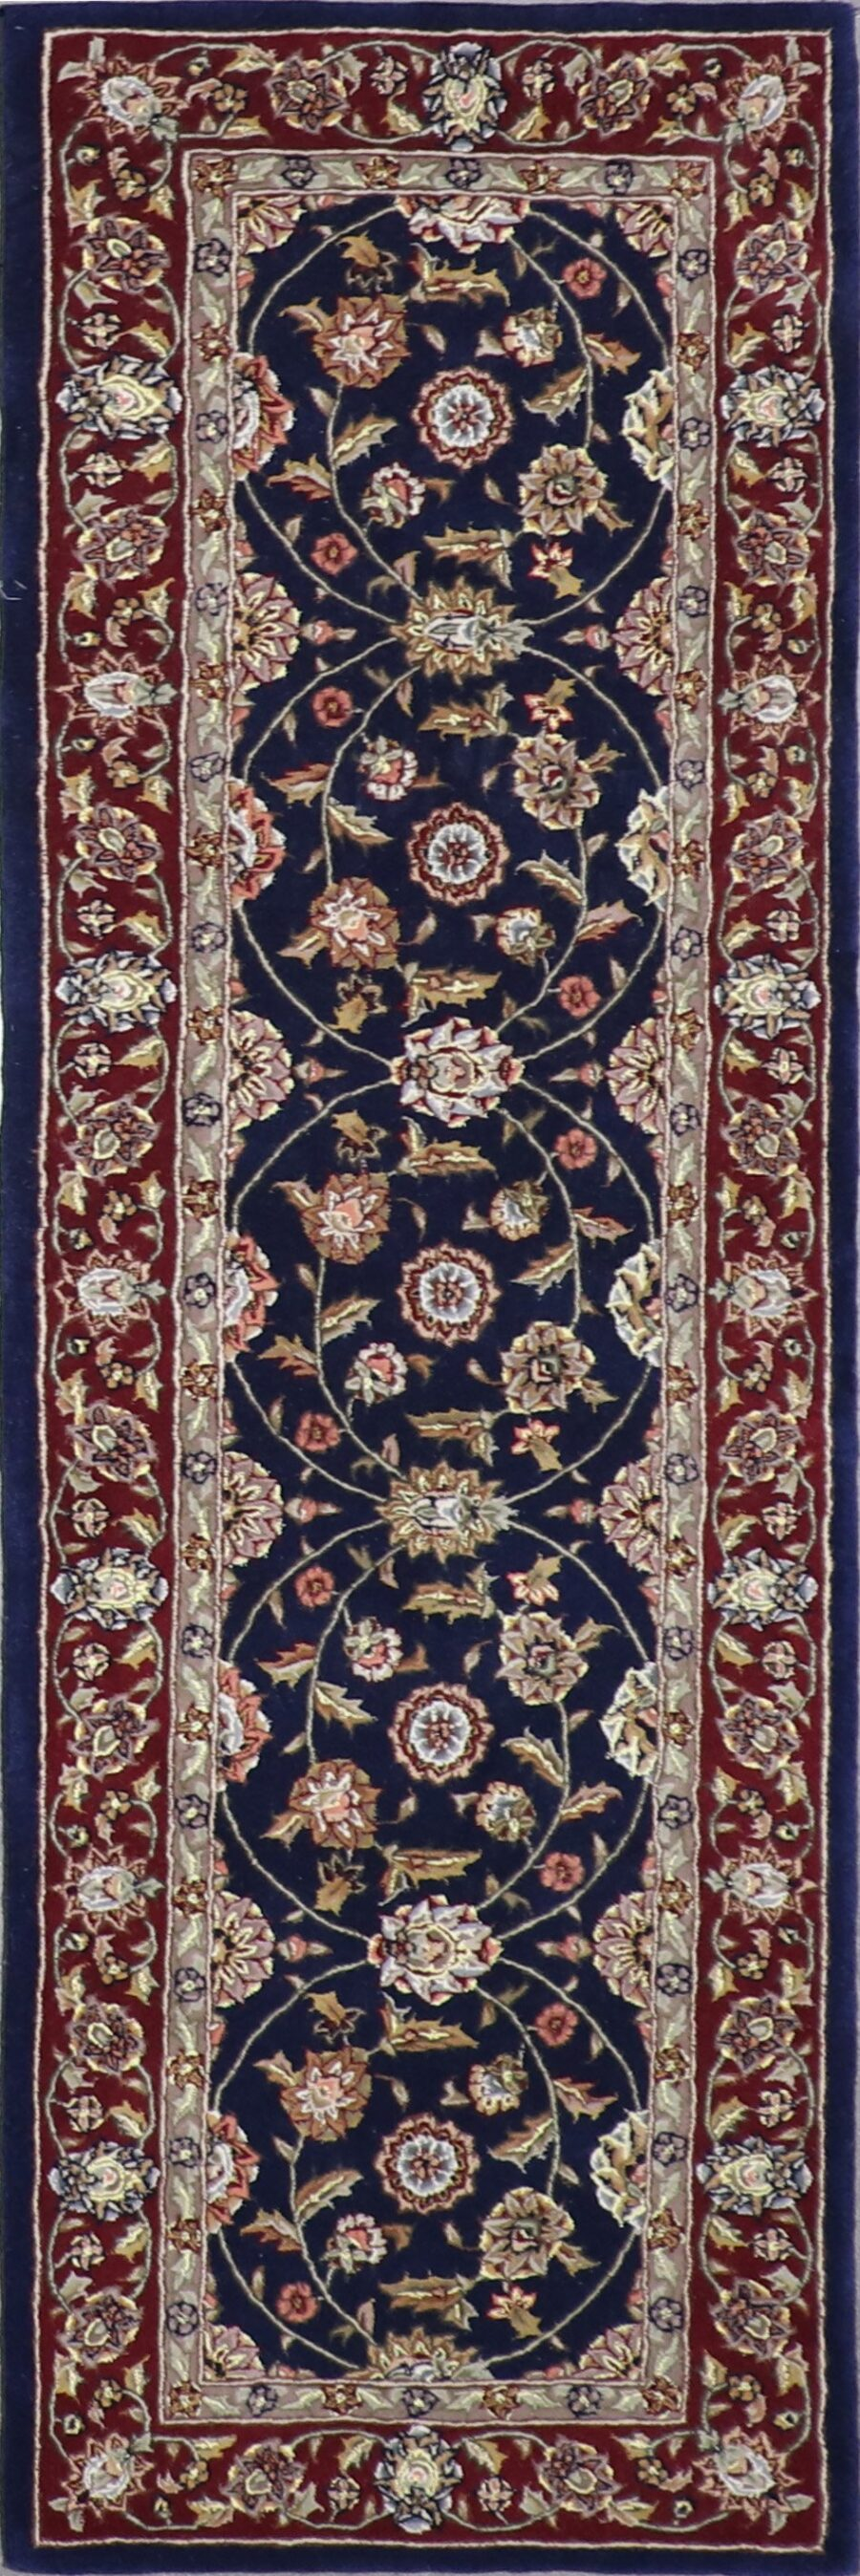 """2'5""""x8' Traditional Wool & Silk Hand-Tufted Rug - Direct Rug Import   Rugs in Chicago, Indiana,South Bend,Granger"""